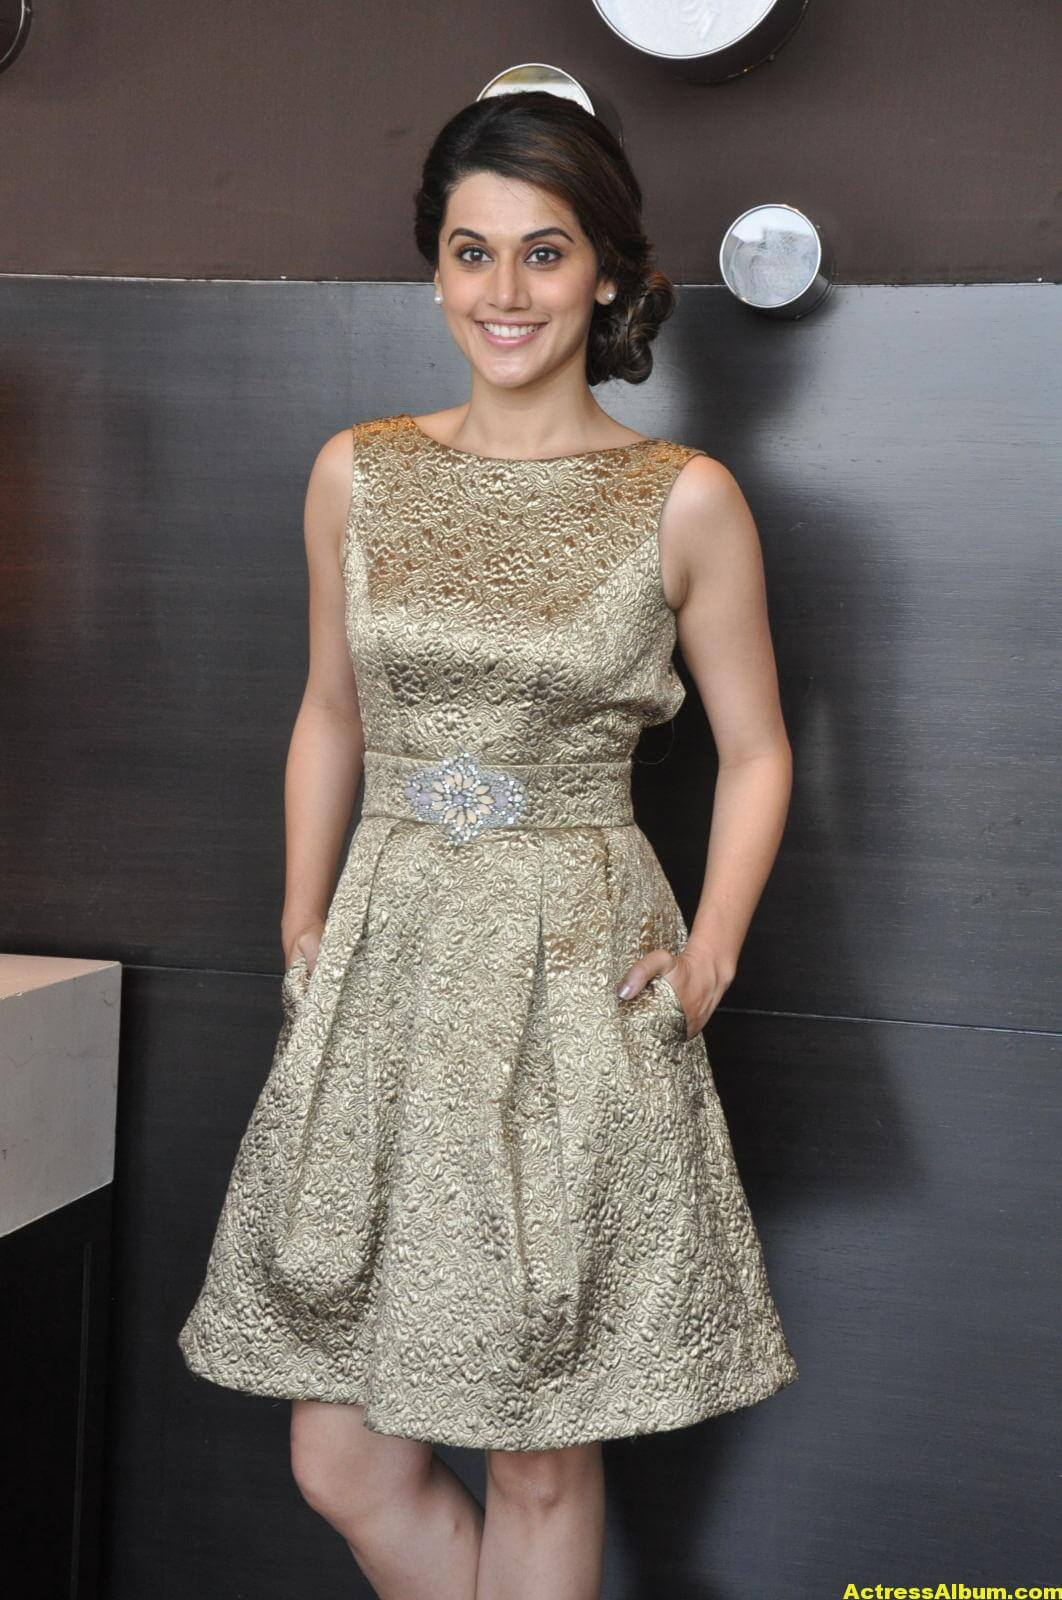 Taapsee Pannu Hot Images In Short Dress 2